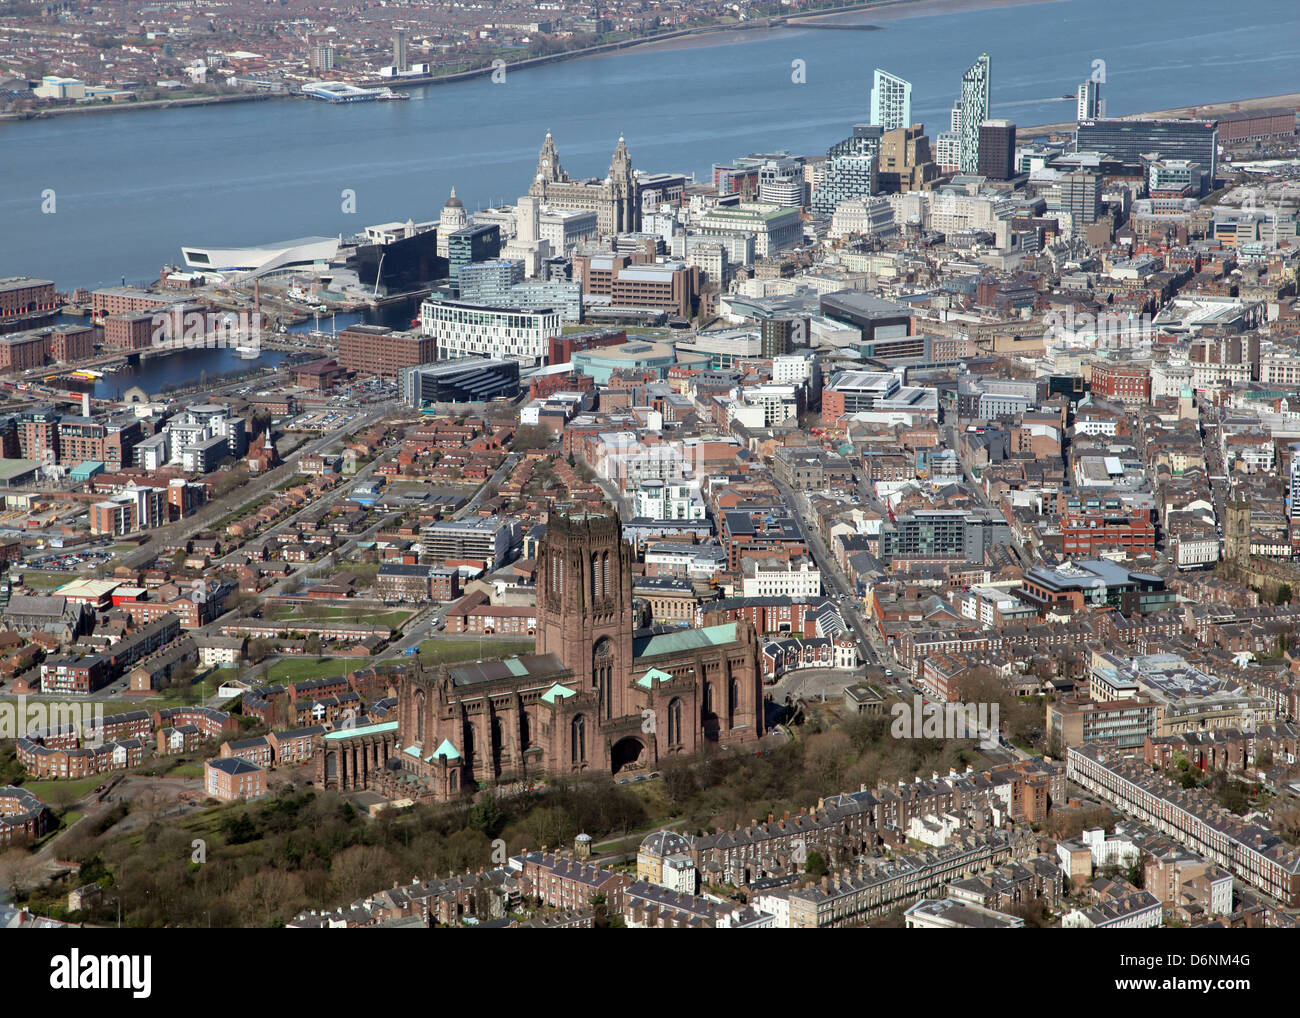 drone sell with Stock Photo Aerial View Of Liverpool City On Merseyside In The Uk 55795840 on Renault Captur Hypnotic Limited Edition Announced In France 100381 moreover Stock Photo Aerial View Of Liverpool City On Merseyside In The Uk 55795840 as well Product moreover Stock Image Policewoman Aiming Gun Image3421291 as well 201322161049.